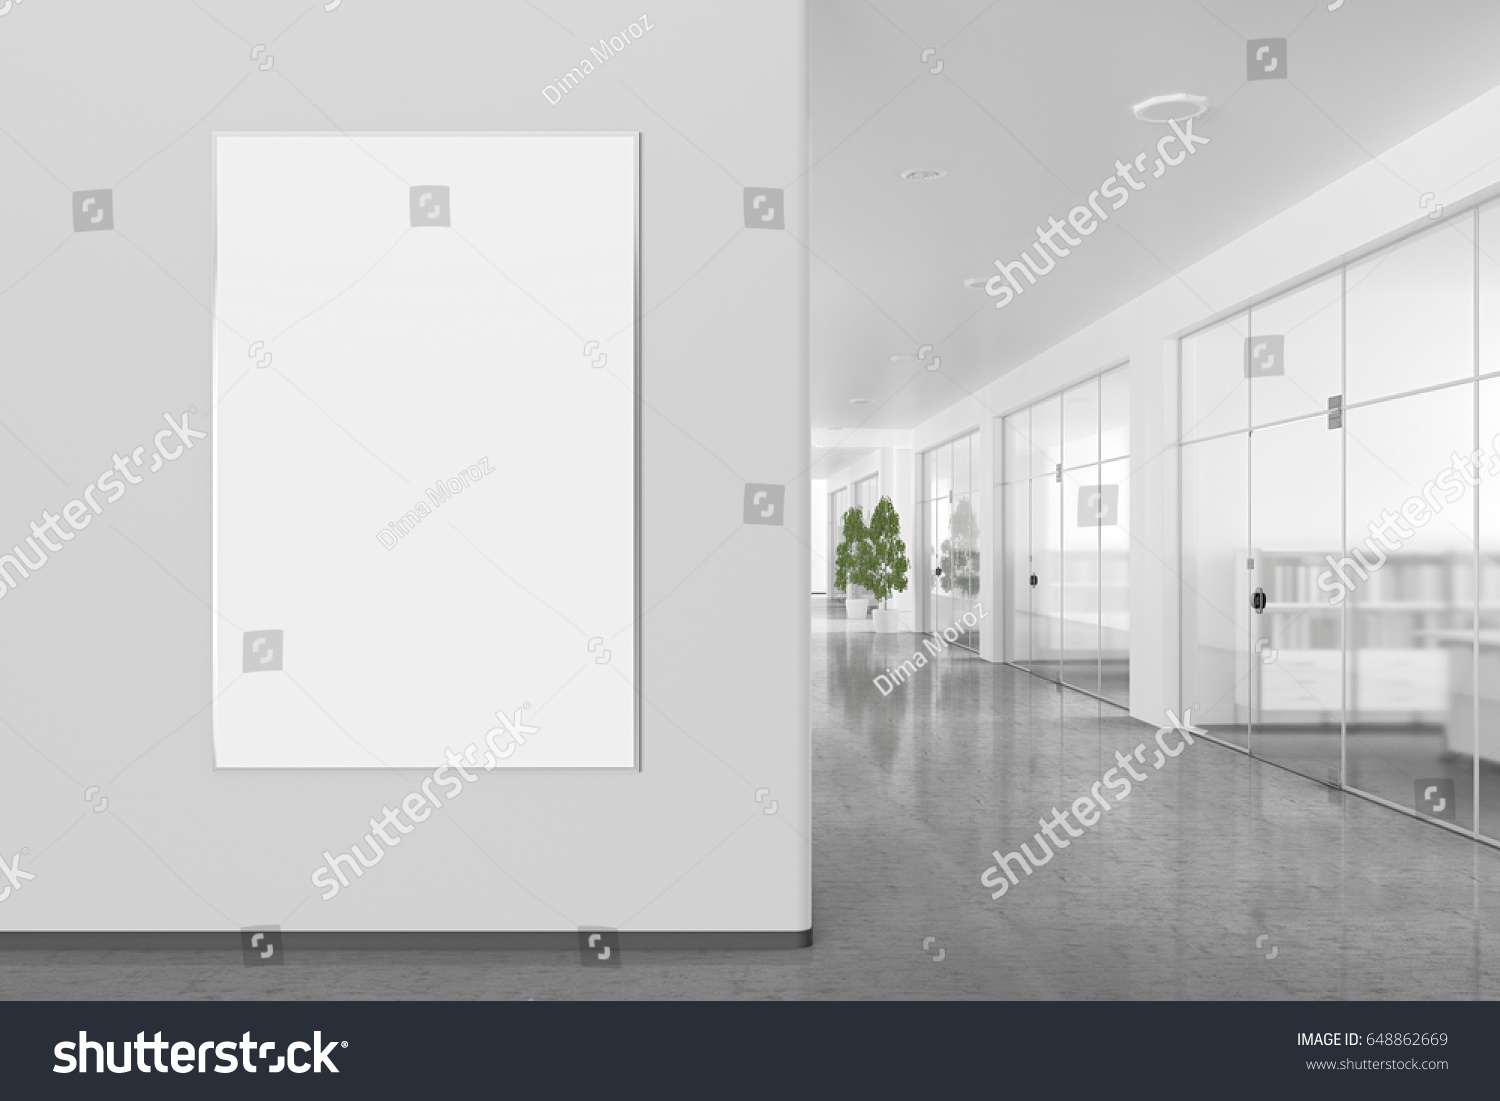 bright office. Blank Poster On Wall Bright Office Stock Illustration 648862669 - Shutterstock